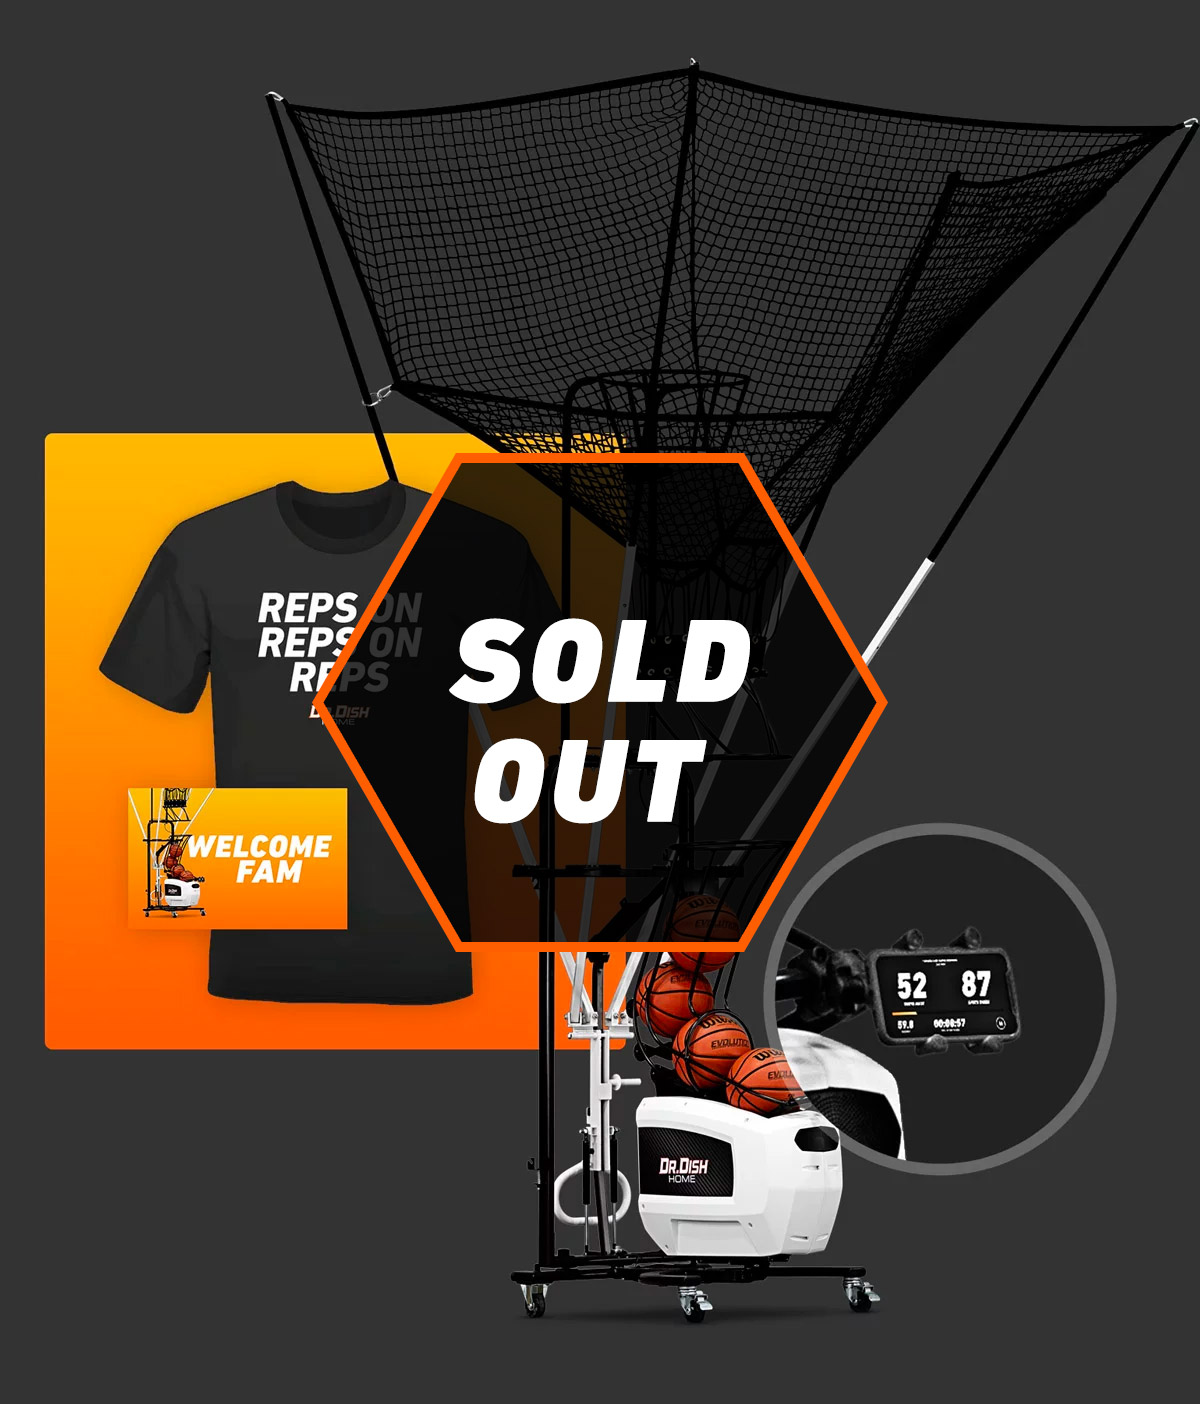 Dr Dish Home Beta - Sold Out